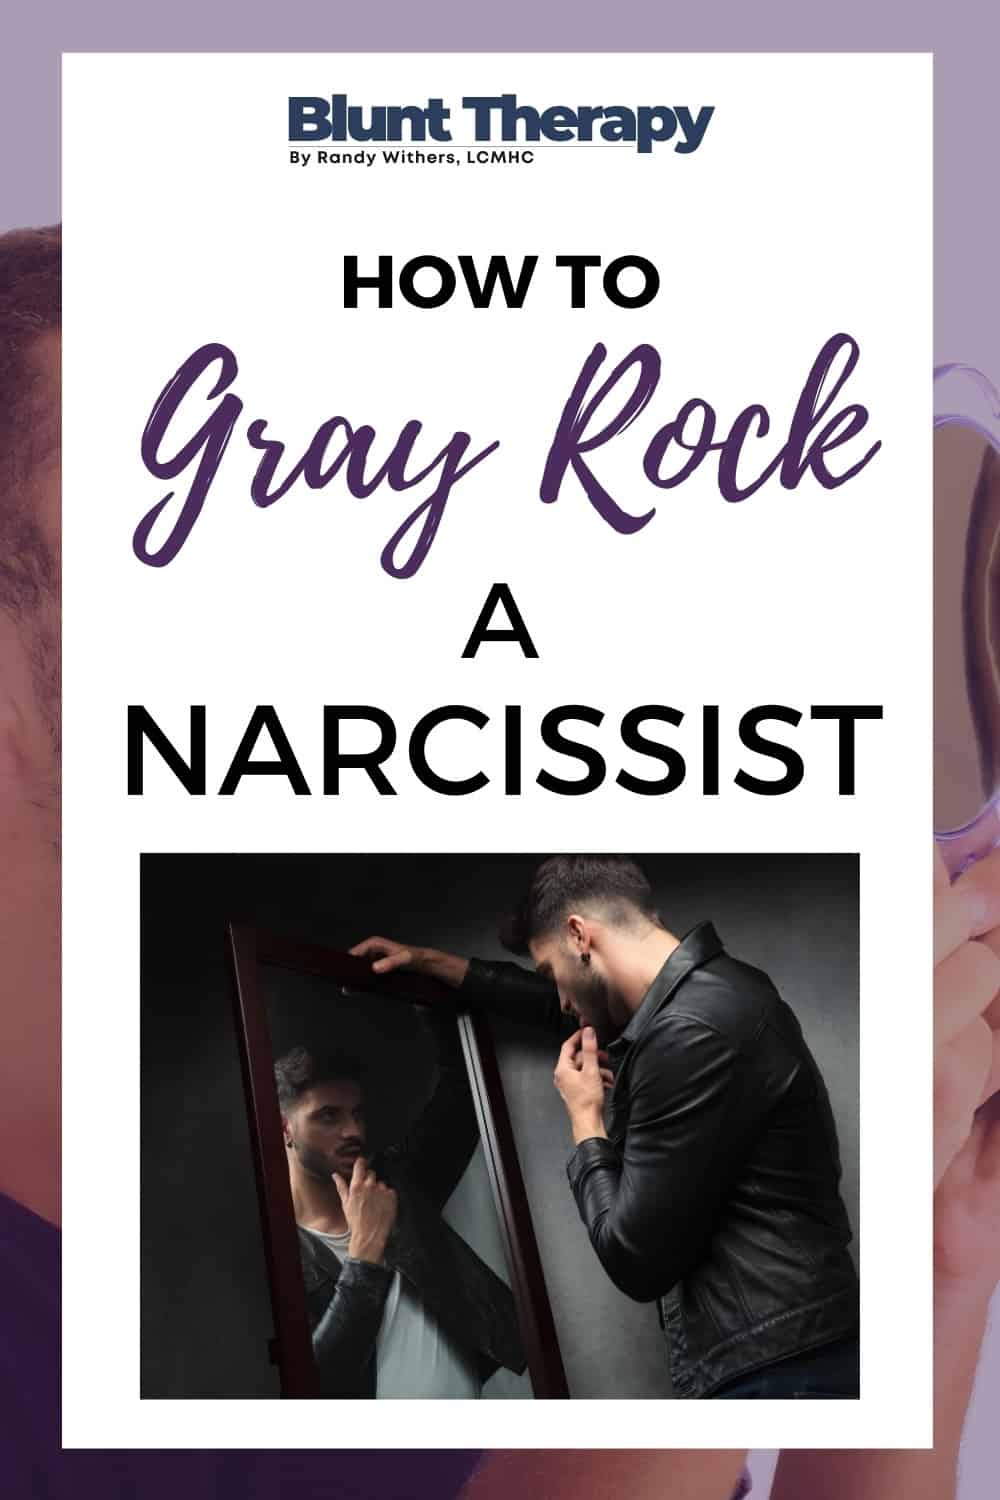 How To Use The Gray Rock Method To Deal With A Narcissist